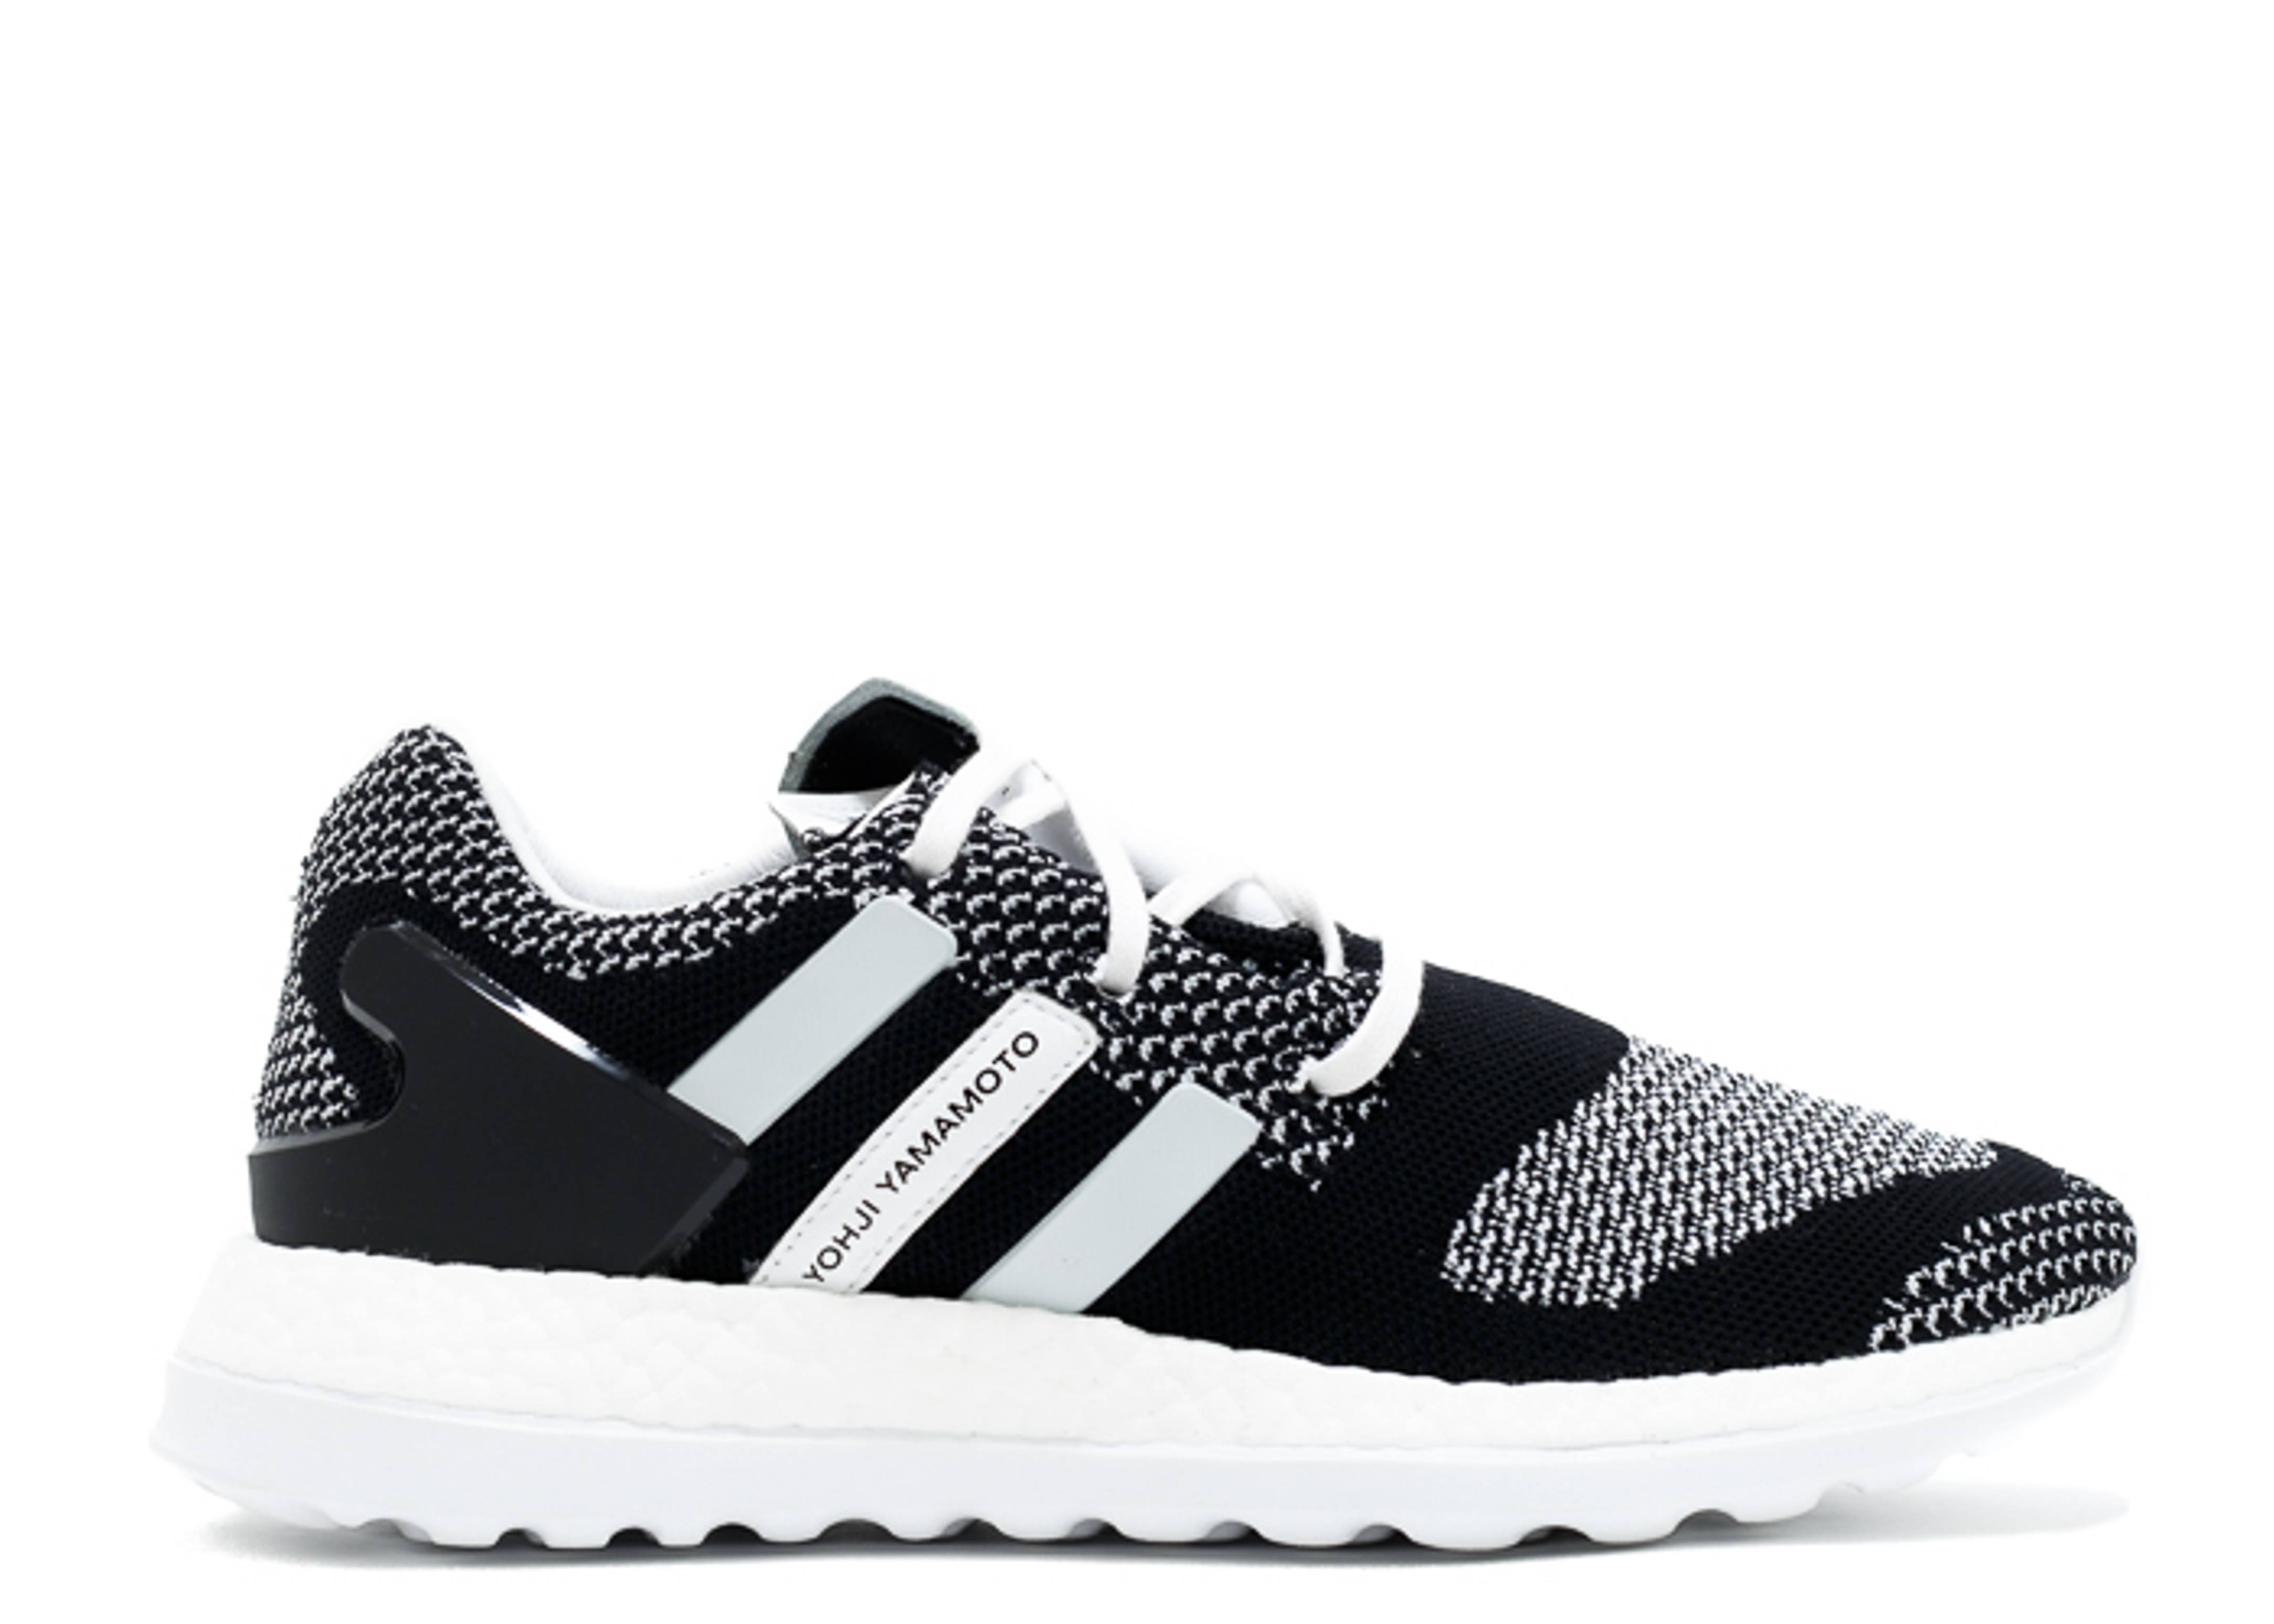 adidas Y-3 Fall/Winter 17 18 Preview